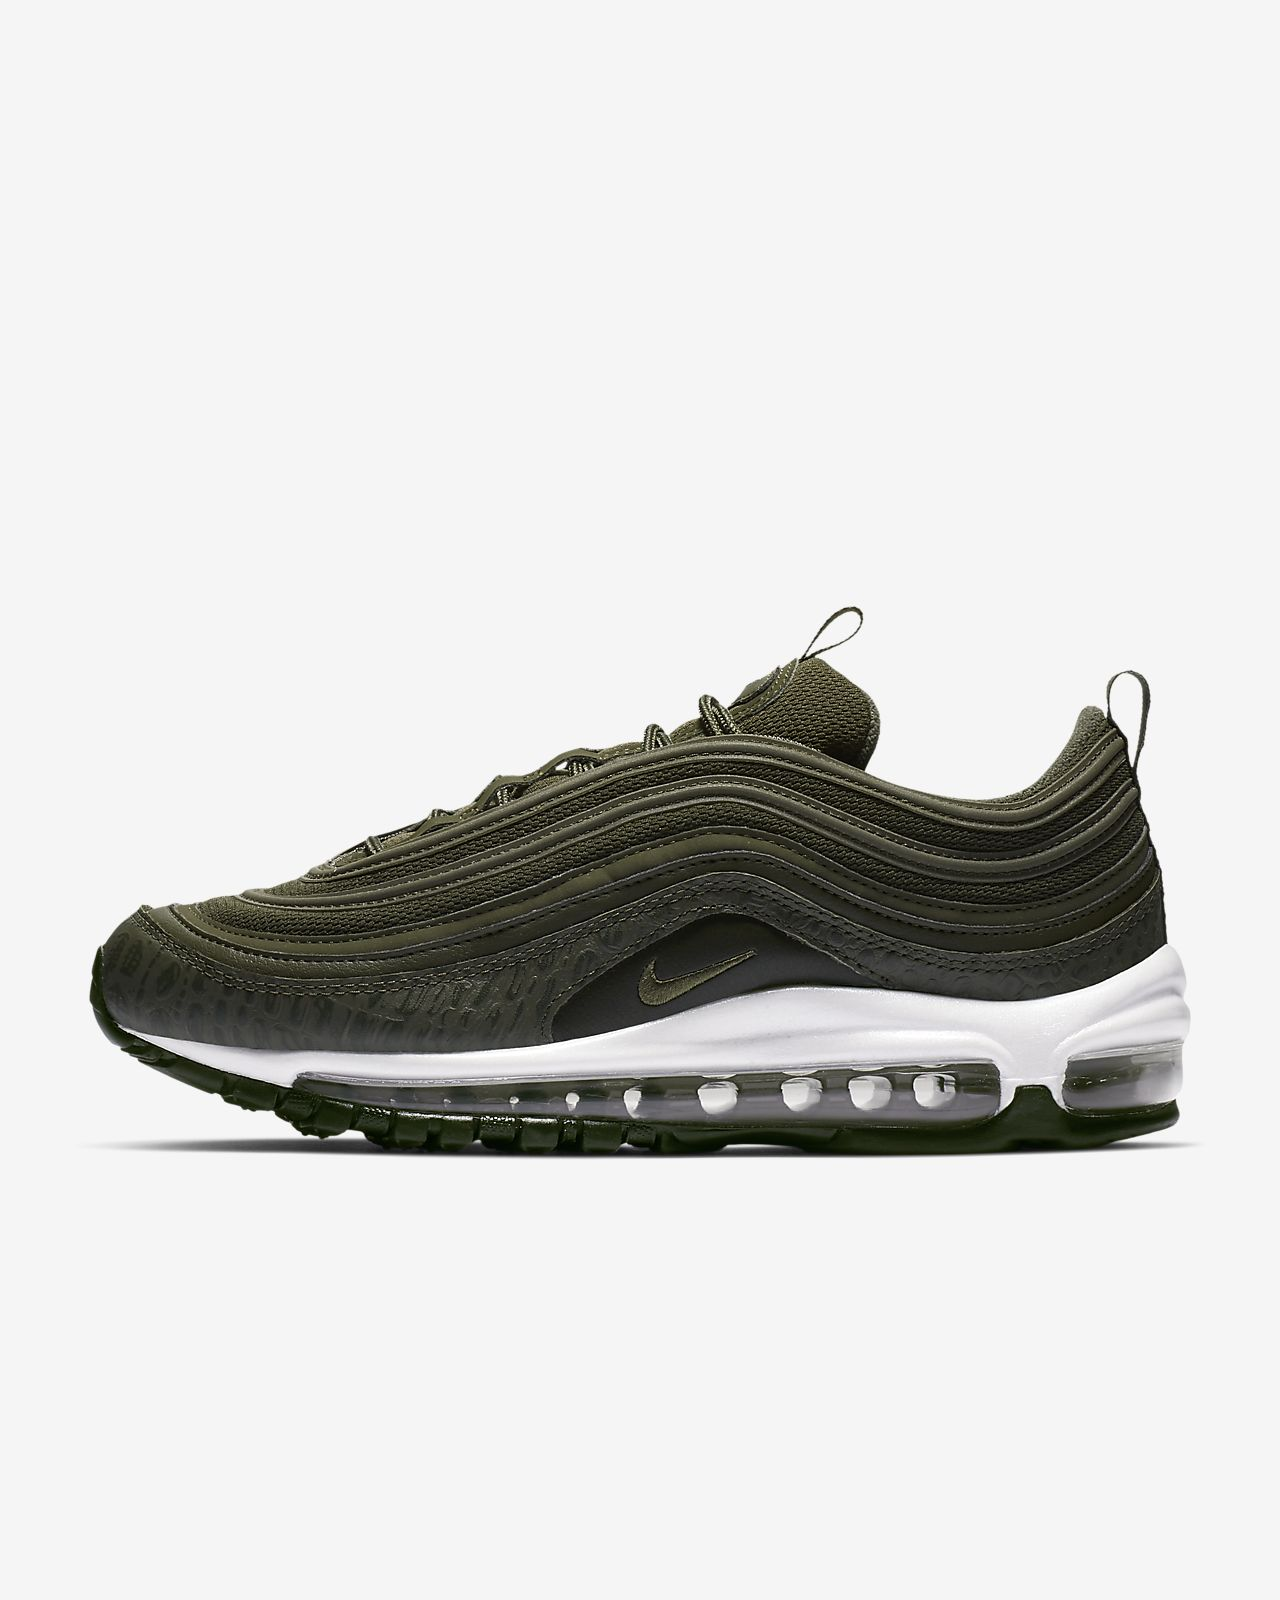 newest d2701 72f6f ... Chaussure Nike Air Max 97 LX pour Femme